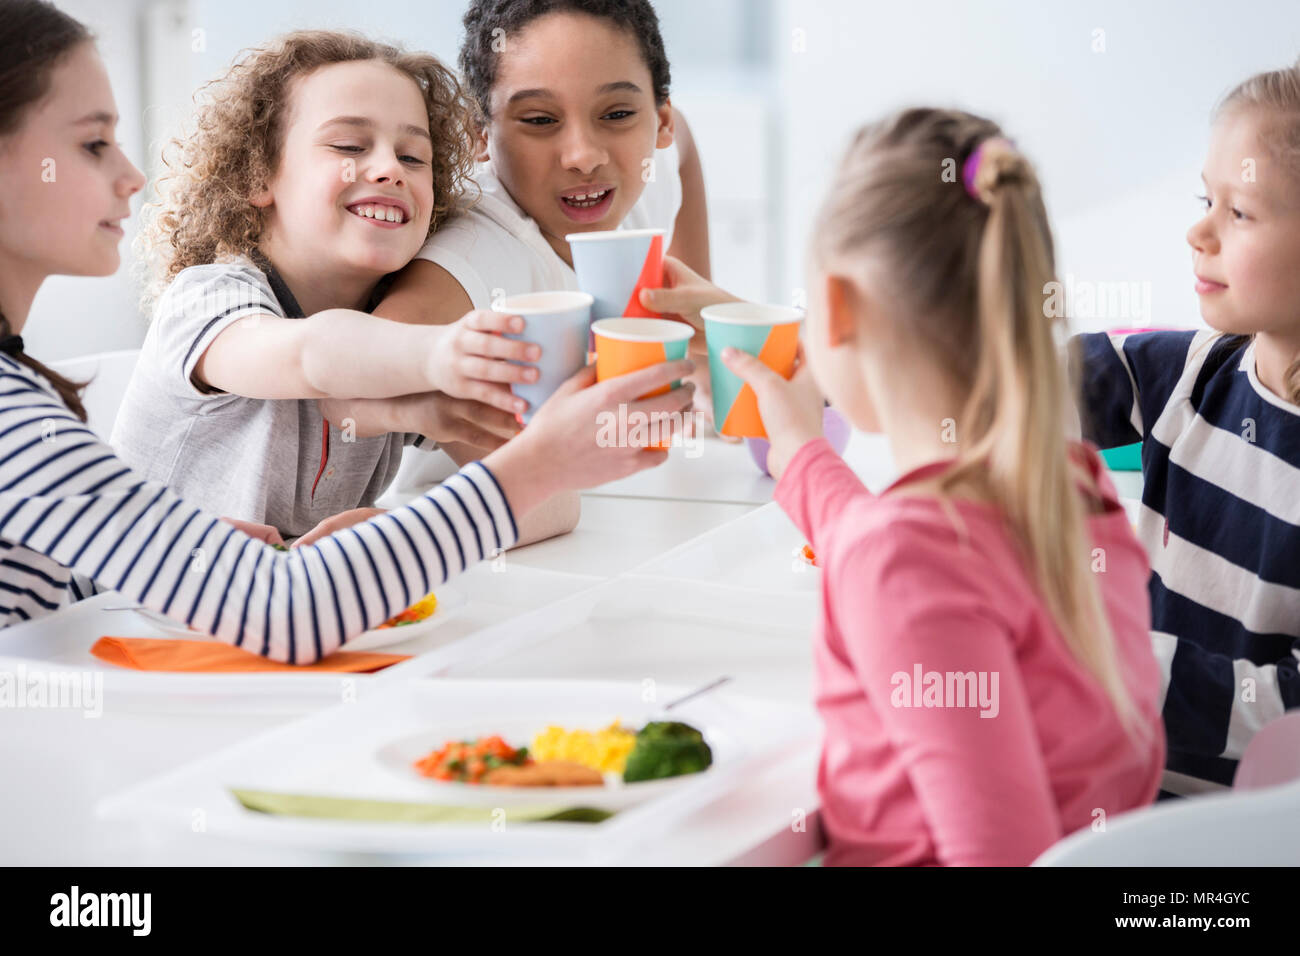 Multicultural group of children toasting during birthday party at home - Stock Image